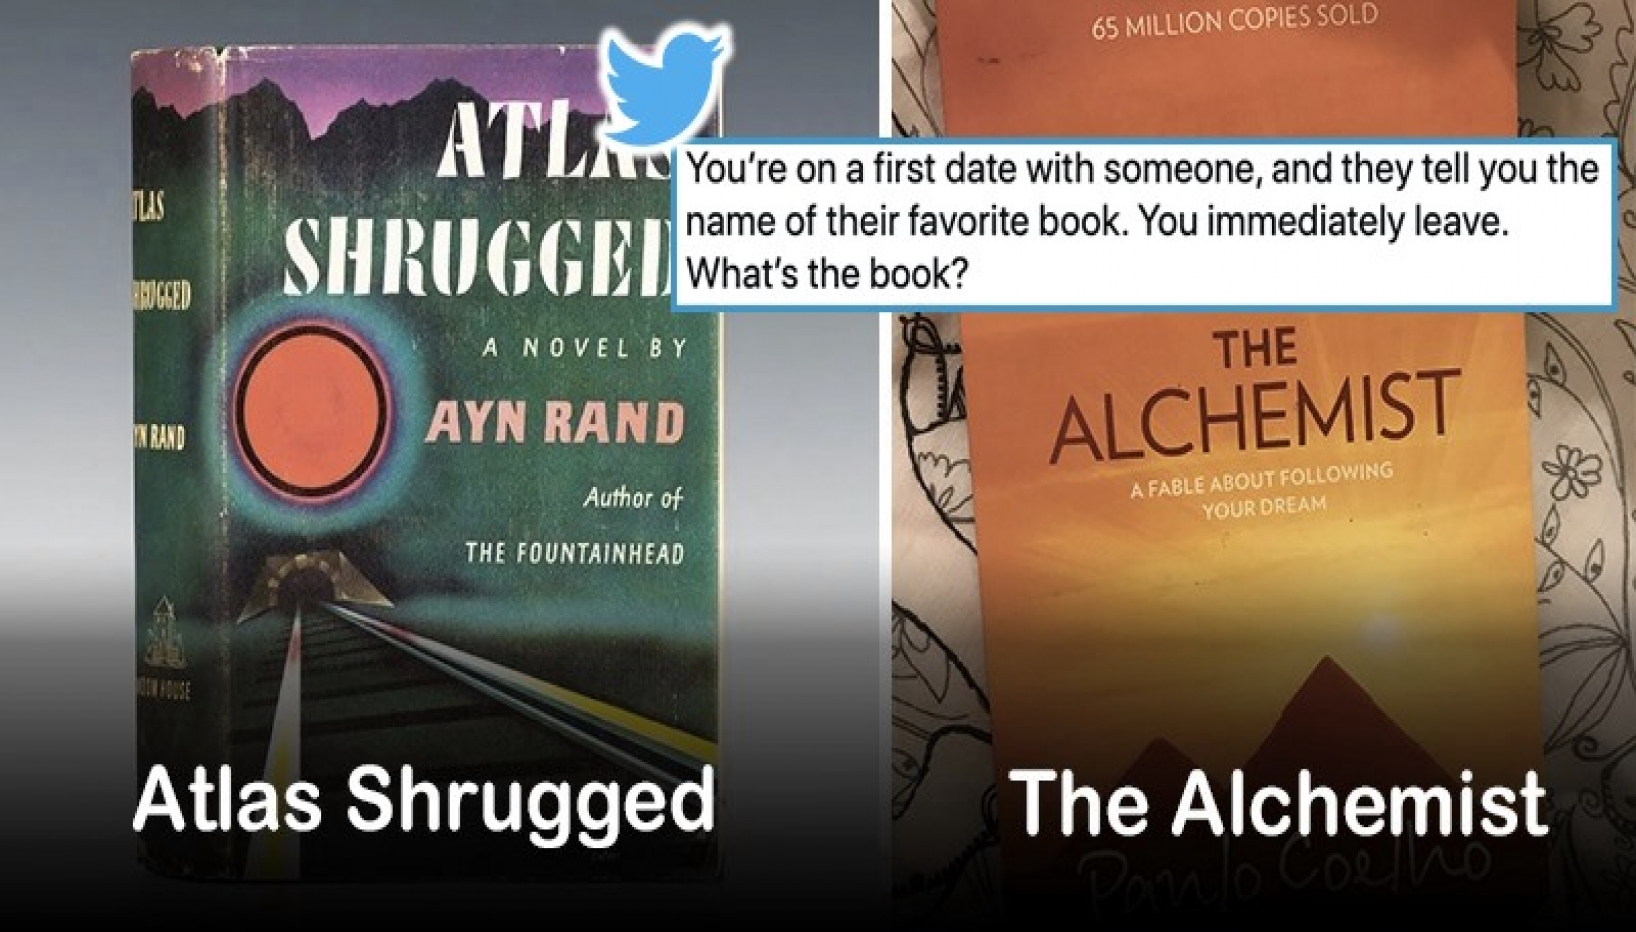 Woman Asks Twitter To Name A Book That Could Ruin A Date And The Internet Didn't Hold Back